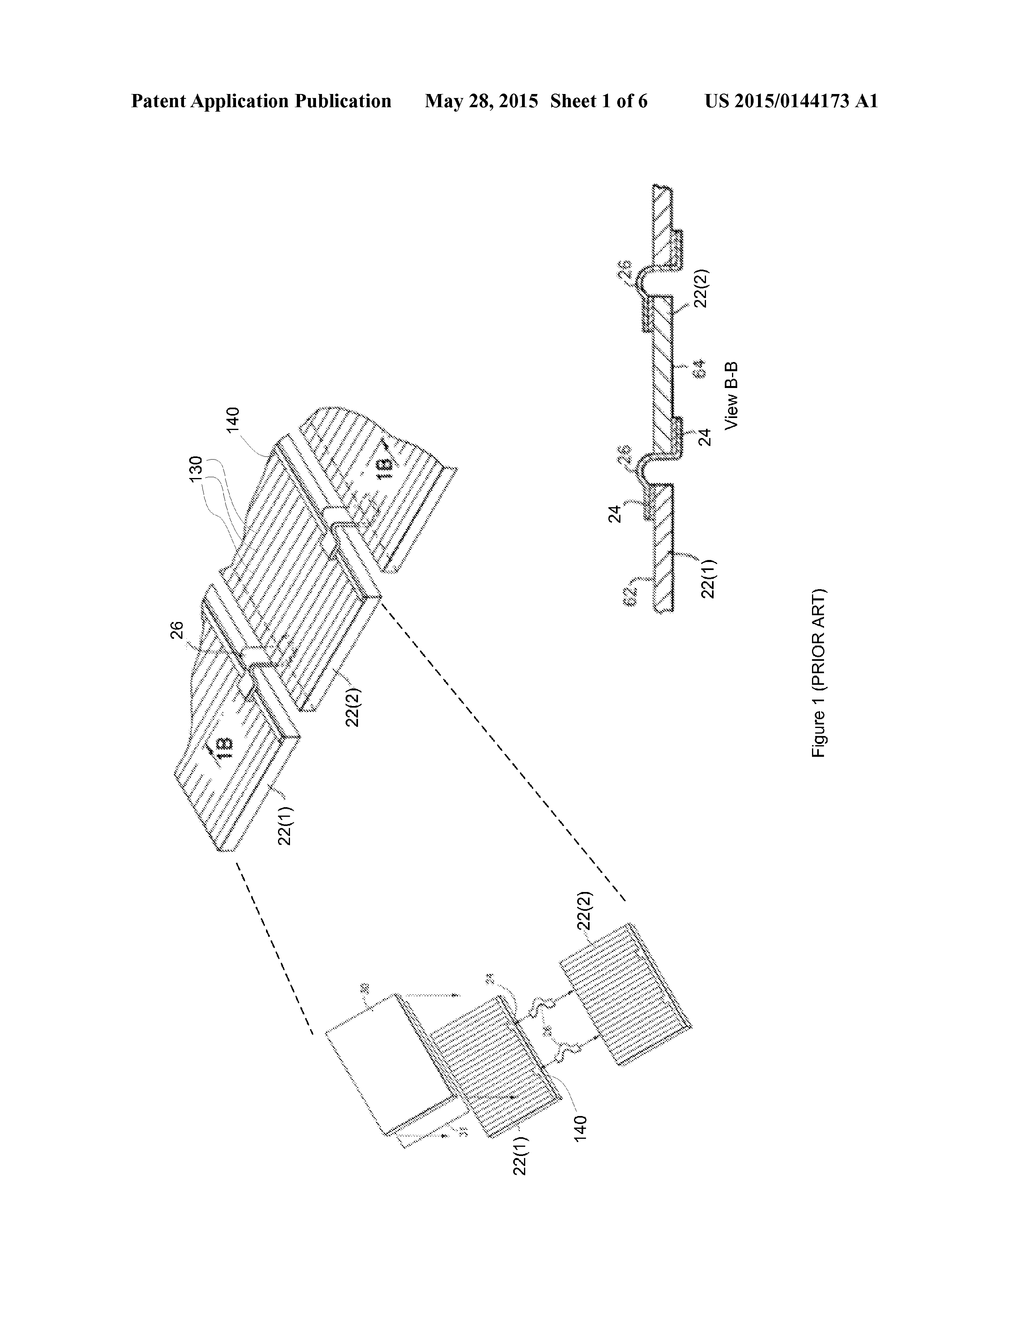 integral corner bypass diode interconnecting configuration for multiple  solar cells - diagram, schematic, and image 02